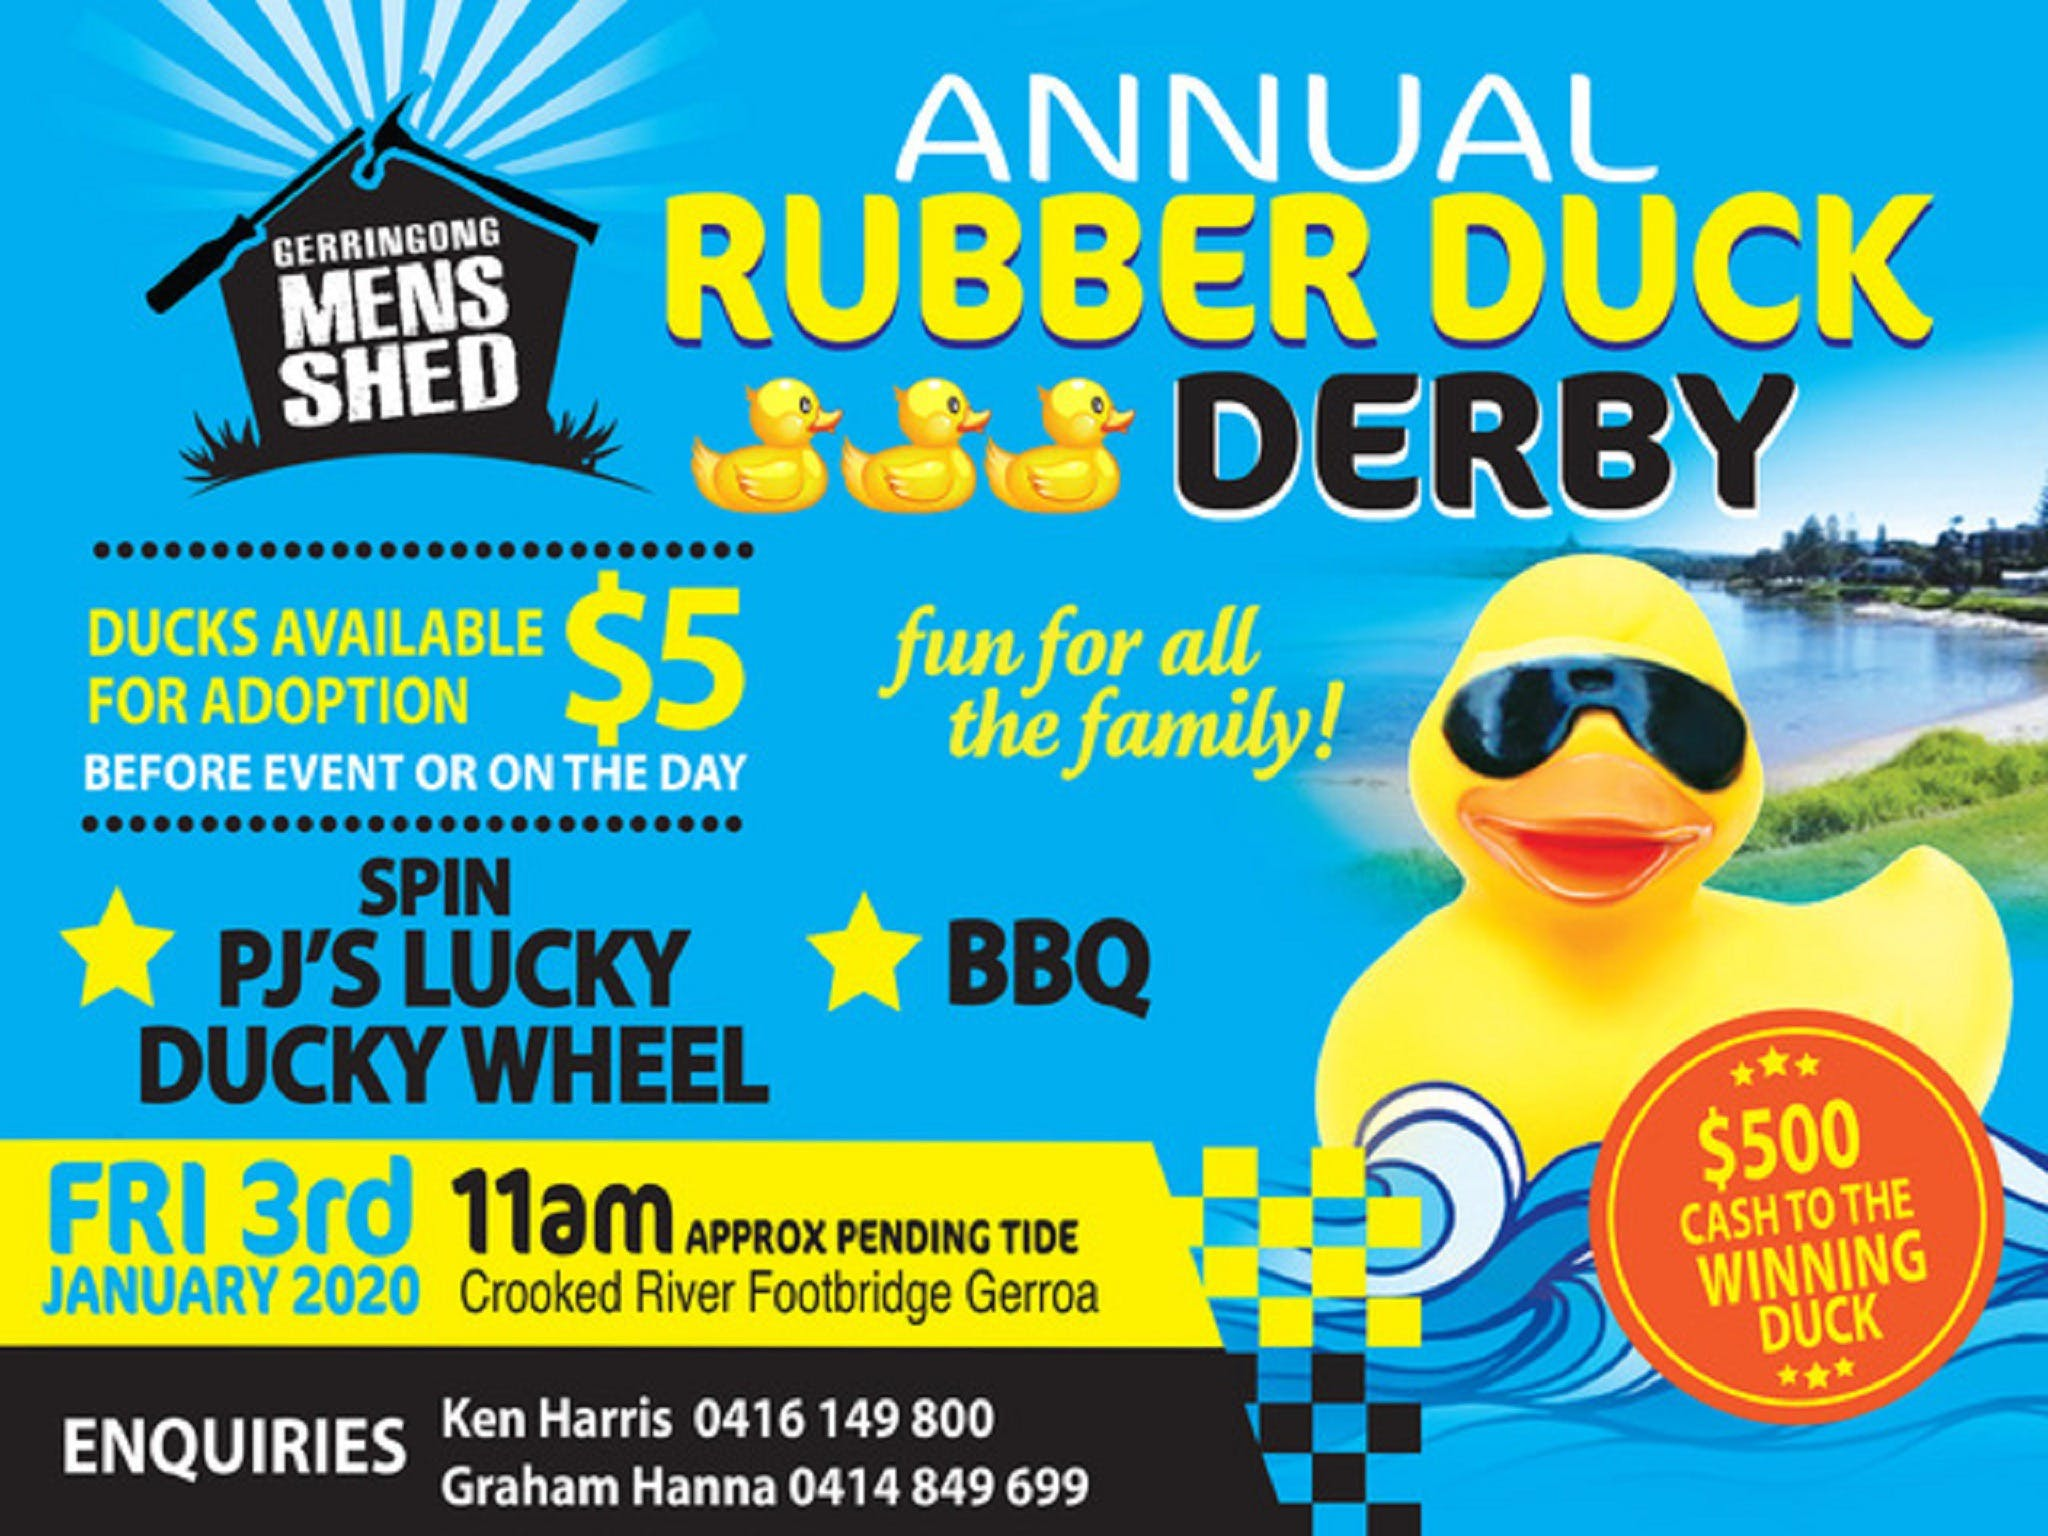 Gerringong Mens Shed Annual Duck Derby - Accommodation Guide